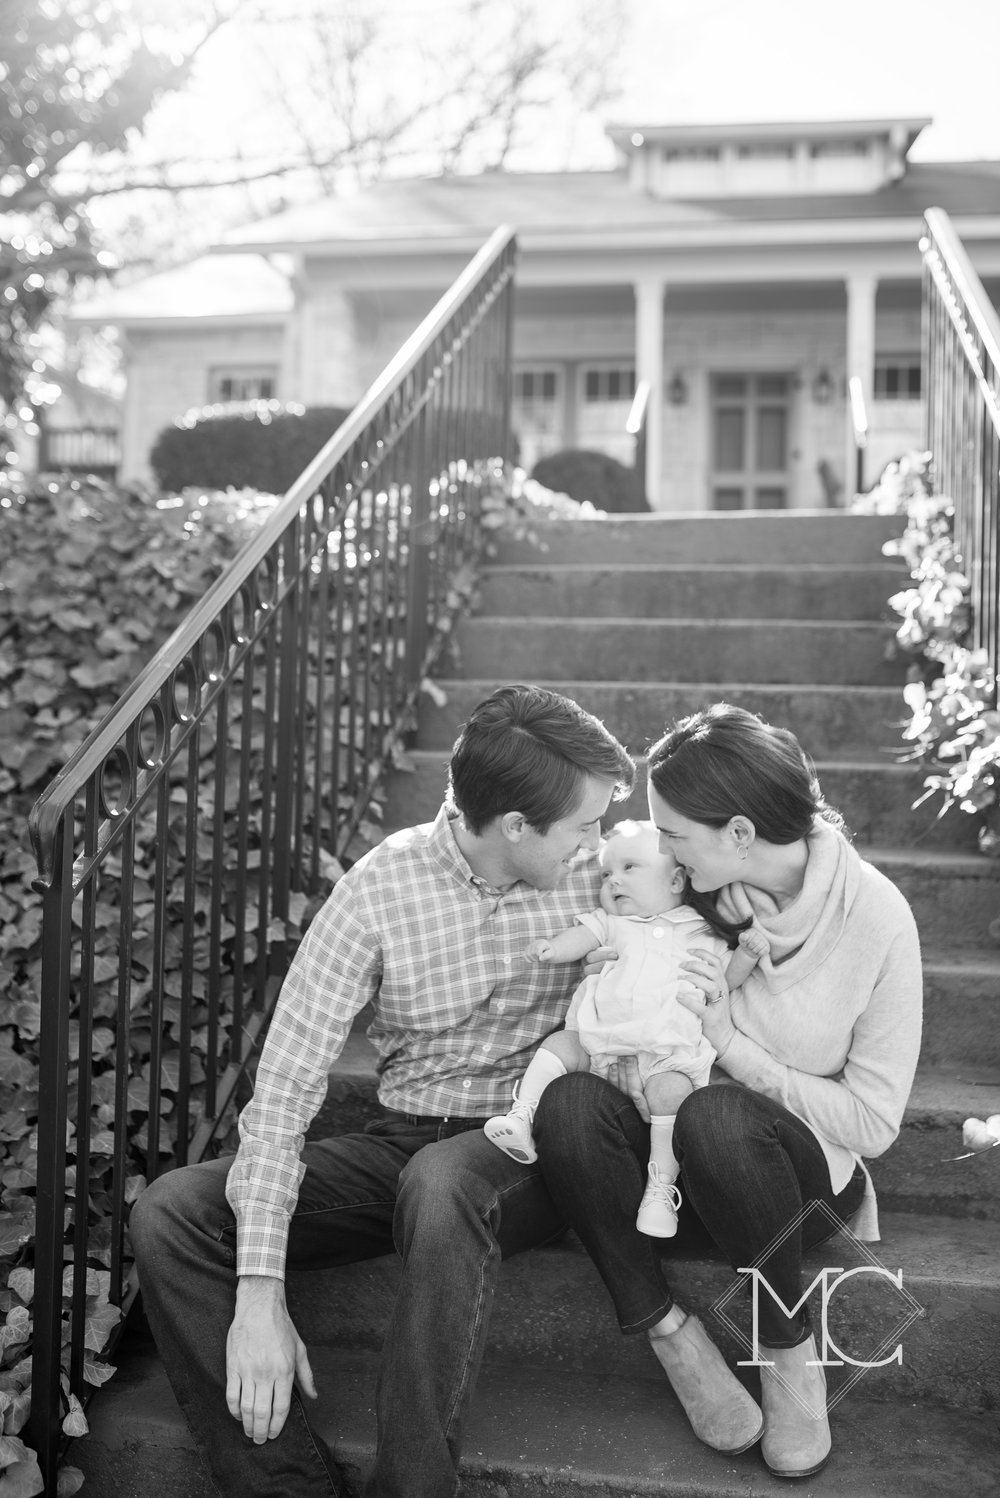 image from family lifestyle photo shoot at home in nashville, tennessee